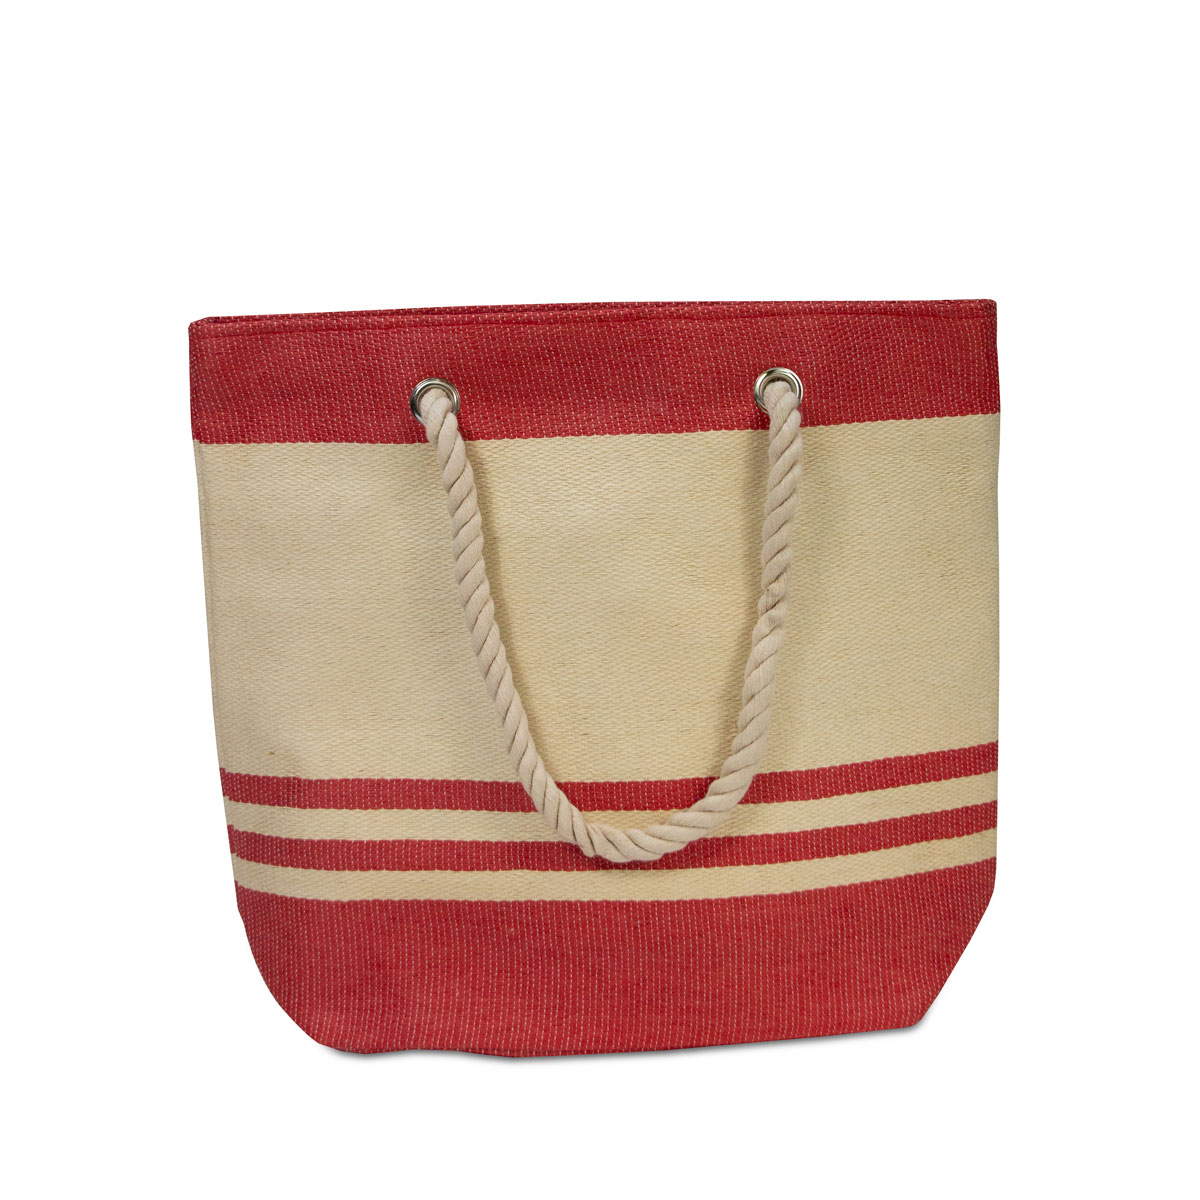 sailor-product_(1)